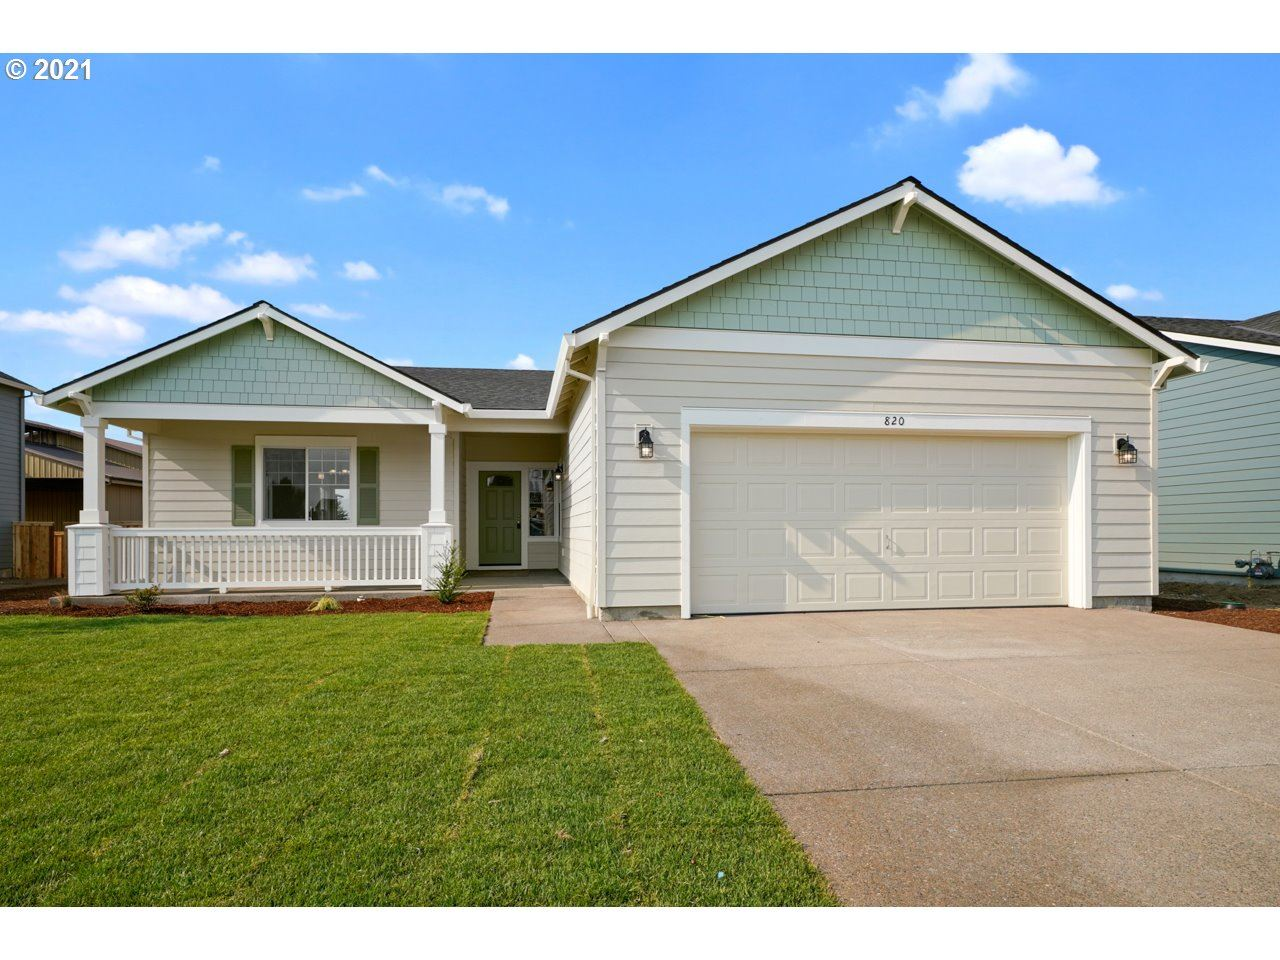 Photo of 1010 winfield ST, Gervais, OR 97026 (MLS # 21330485)